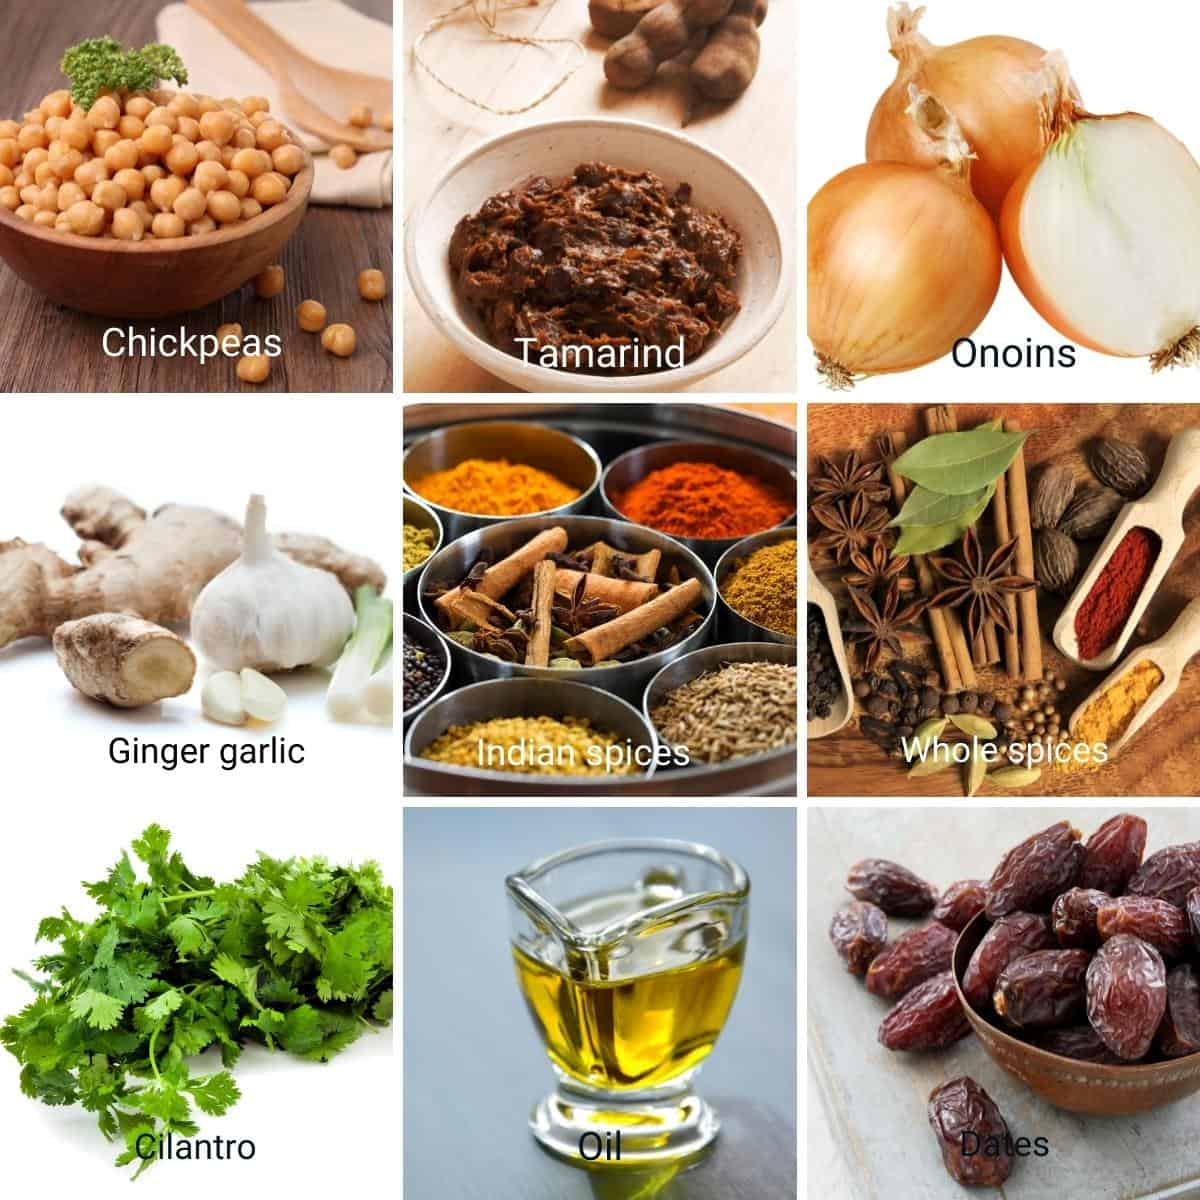 Ingredients needed to make the chickpeas curry channa masala.